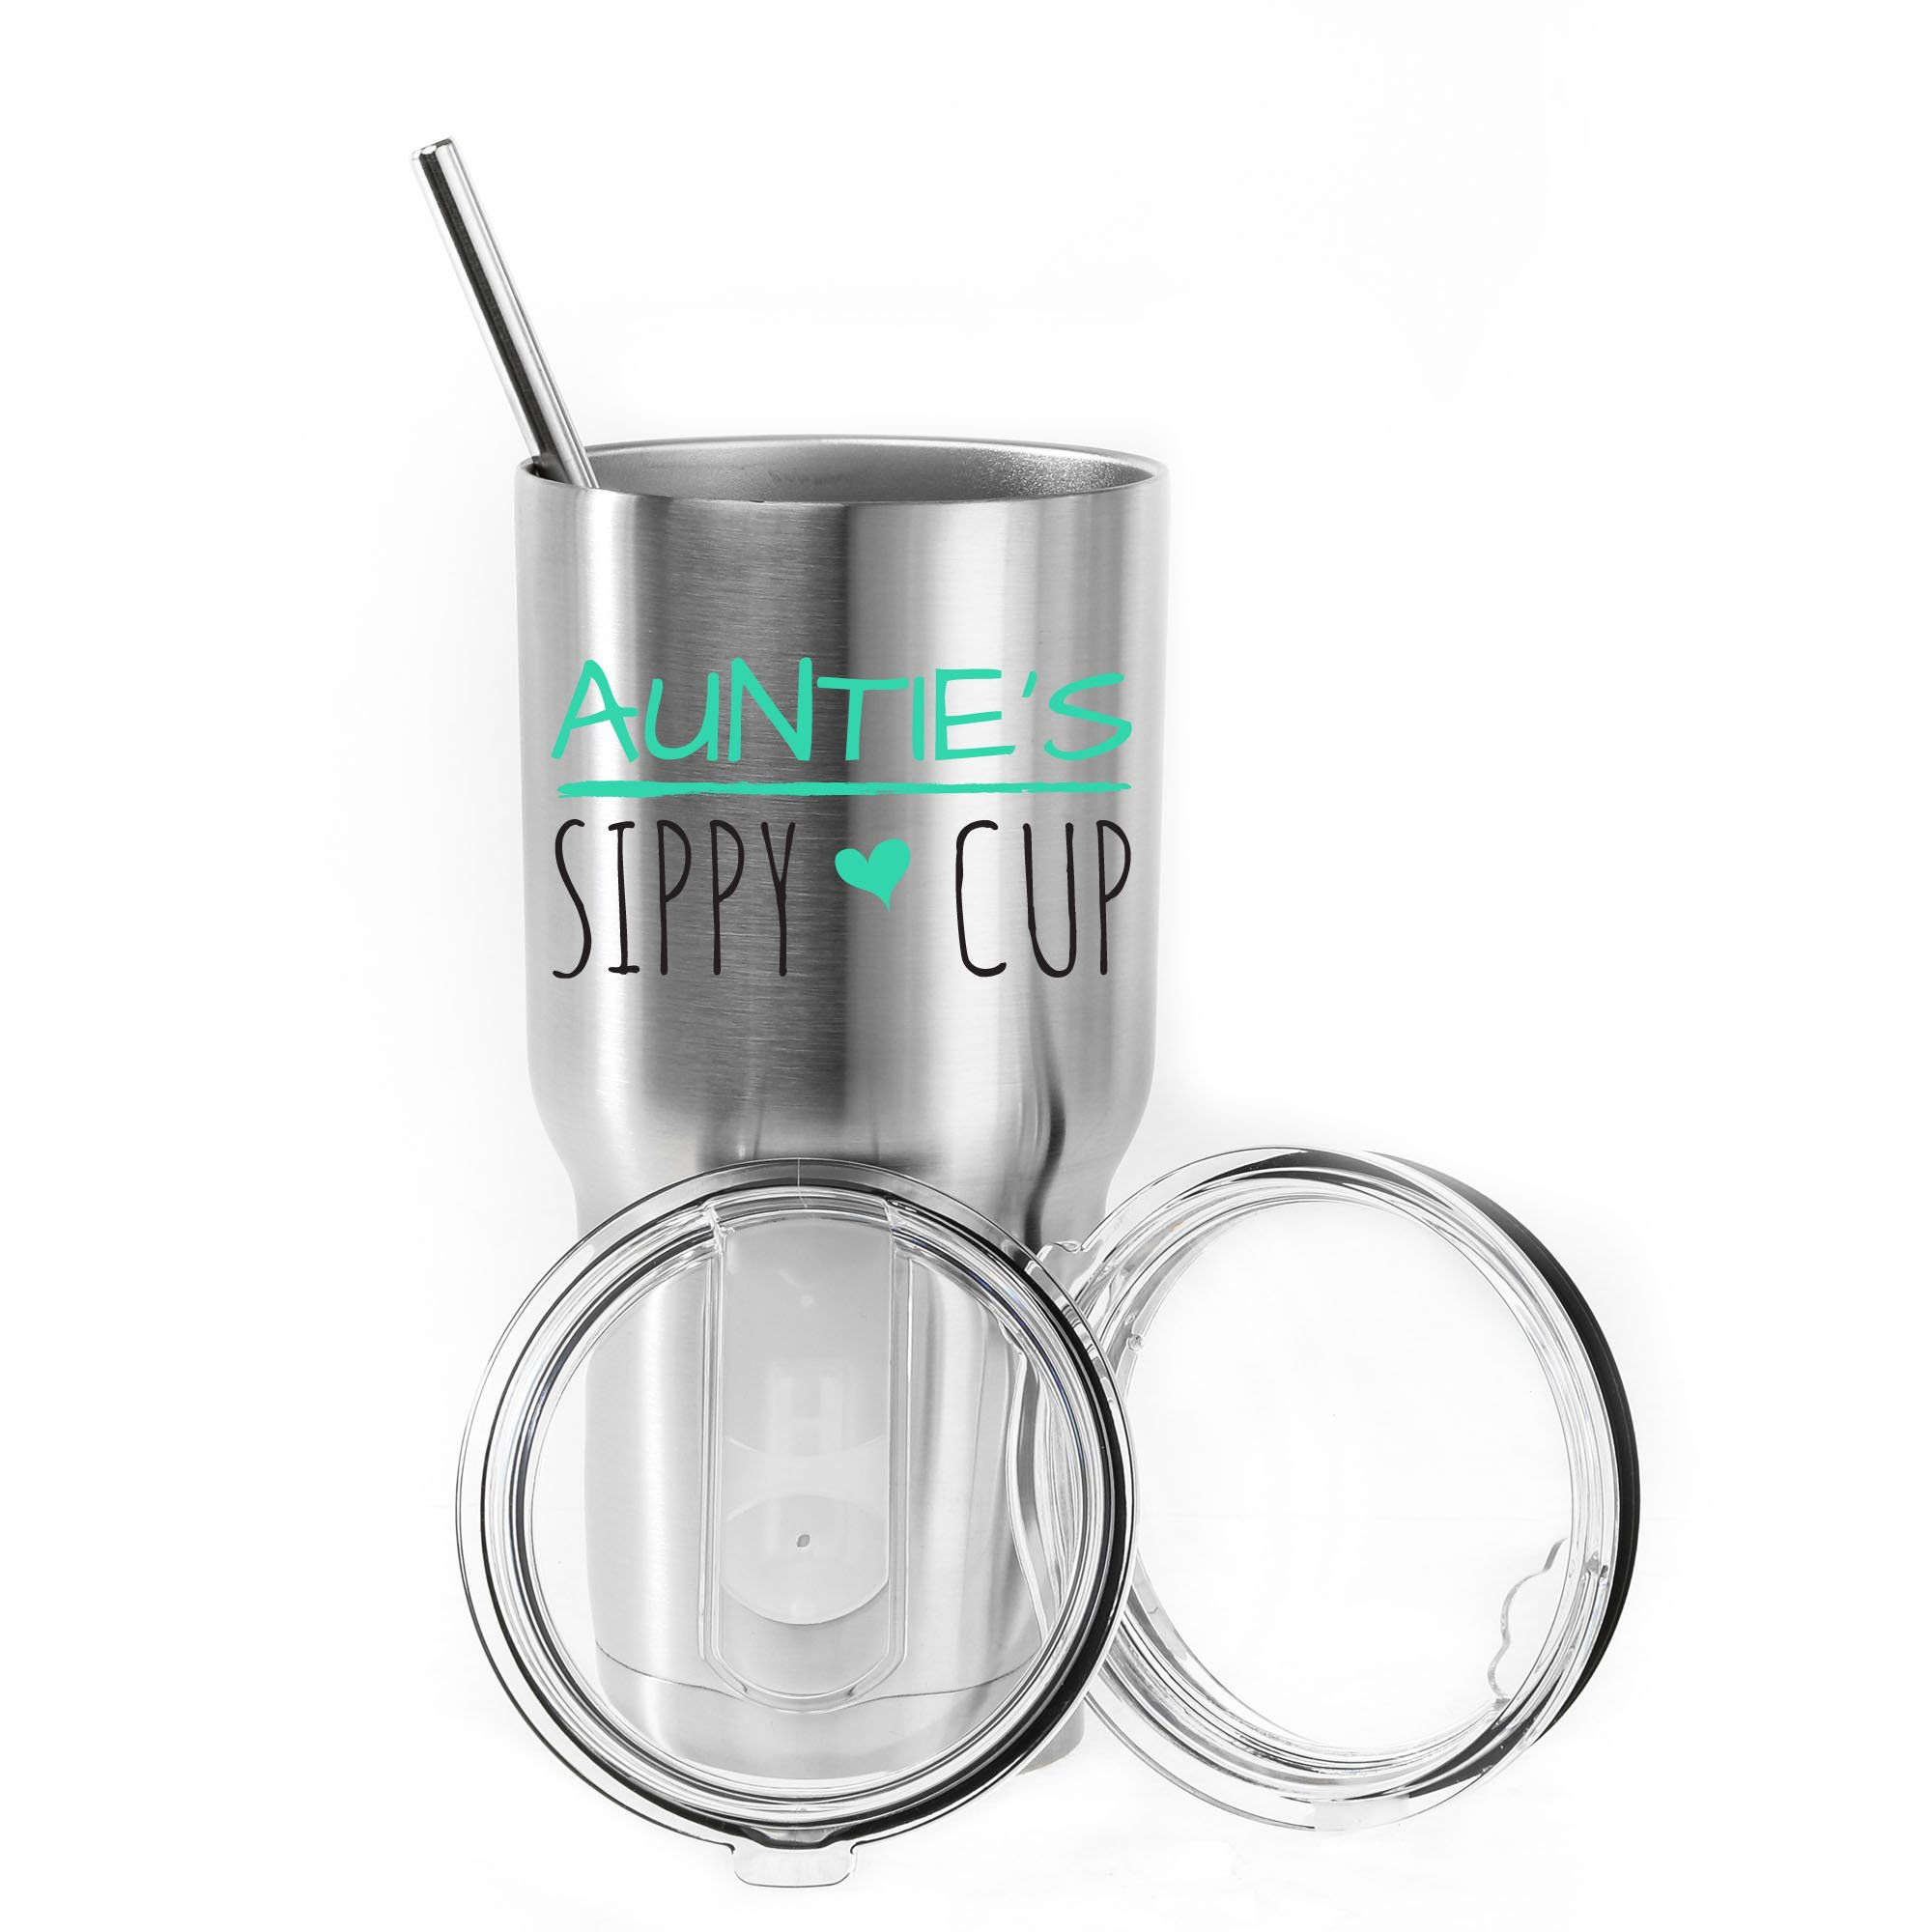 Auntie's Sippy cup 30 oz. Stainless Steel Tumbler Value Pack with 2 Lids and Extra SS Straw - Ideal Gift for Soon to Be Aunties - Proudly Screen Printed in the USA